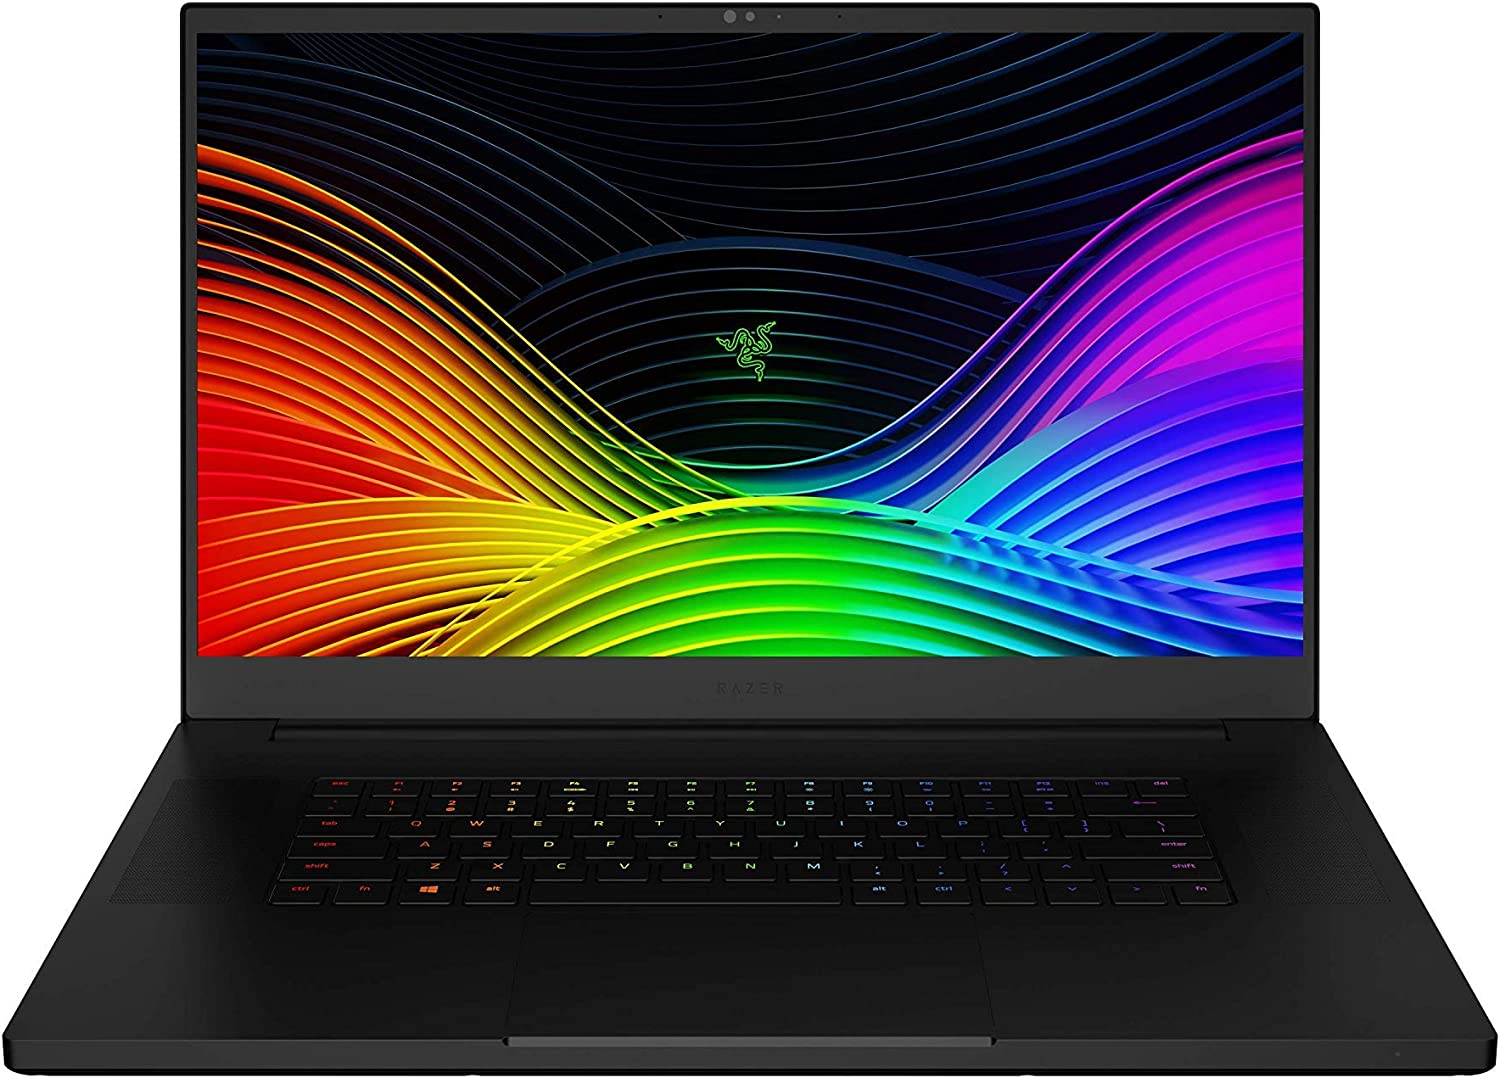 "Razer Blade Pro 17 Gaming Laptop i7-9750H 6 Core, GeForce RTX 2080 Max-Q, 17.3"" FHD 1080p 144Hz, 16GB RAM, 512GB SSD, CNC Aluminum (Renewed)"